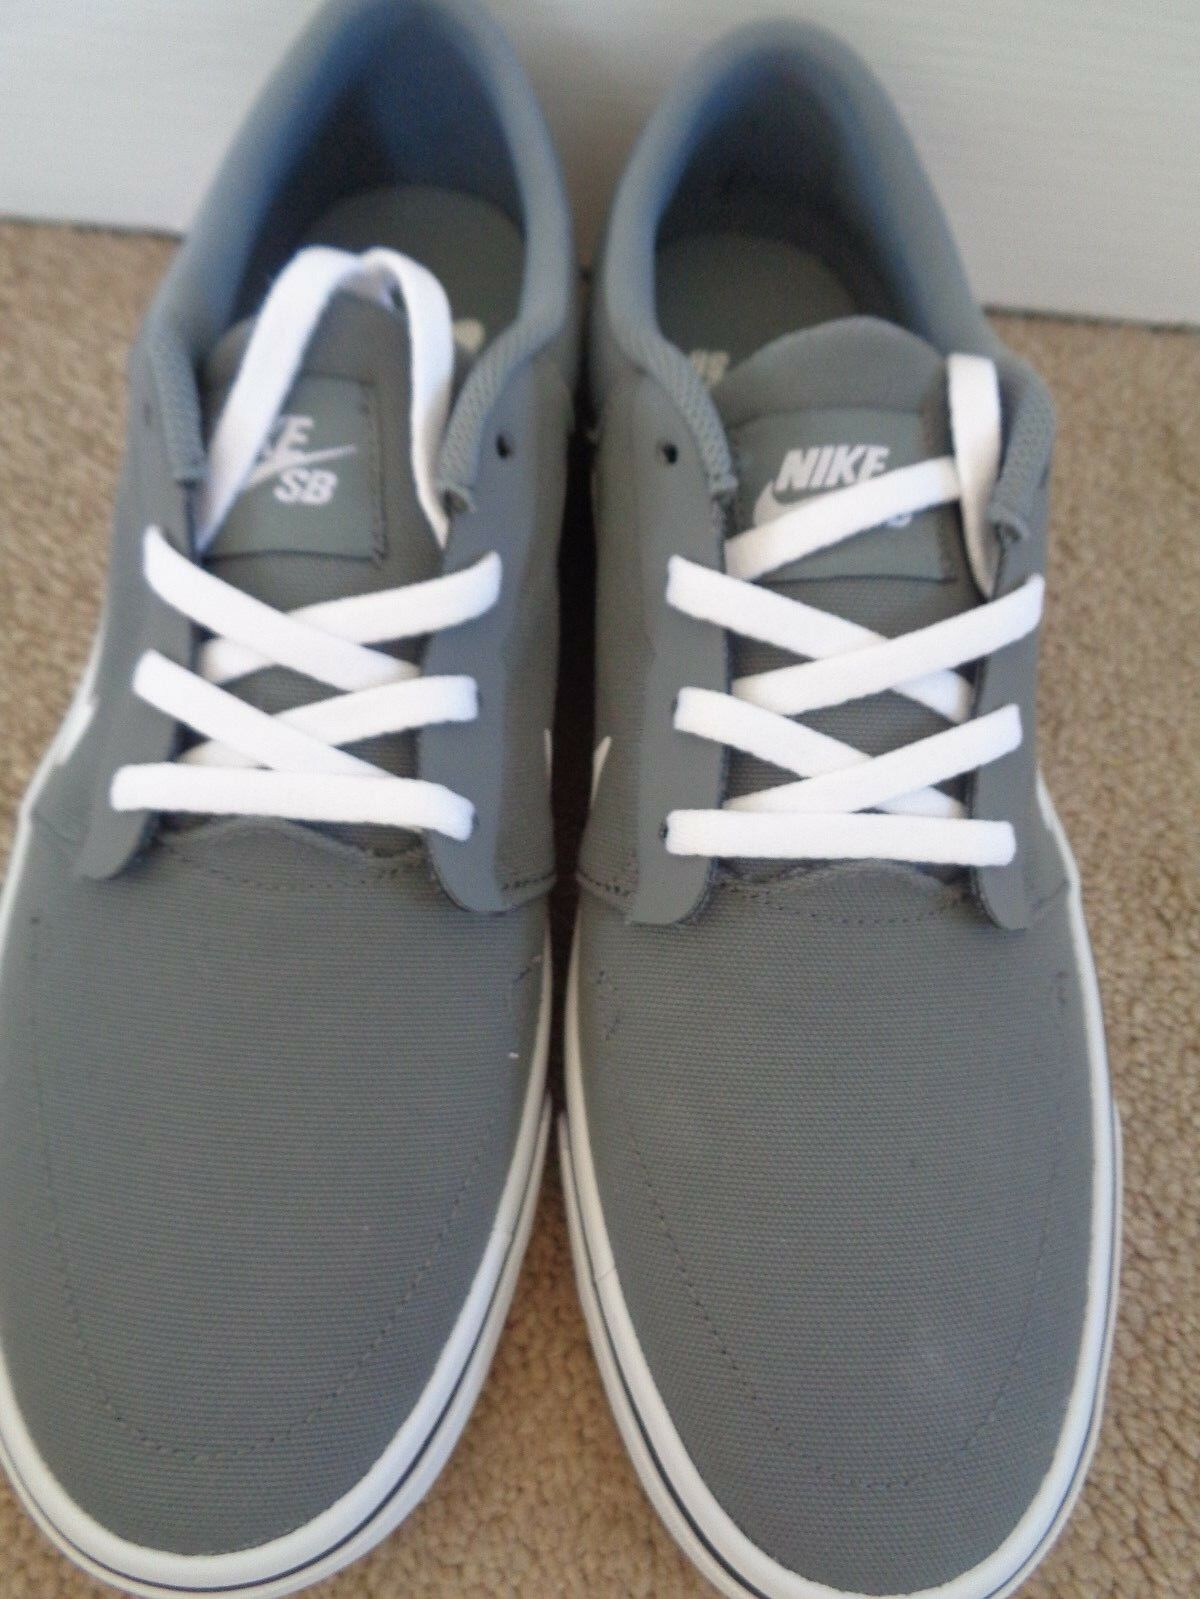 Nike Homme SB Portmore Baskets Homme Nike Chaussures 723874 004 US 8.5 Neuf + Boîte 0381db